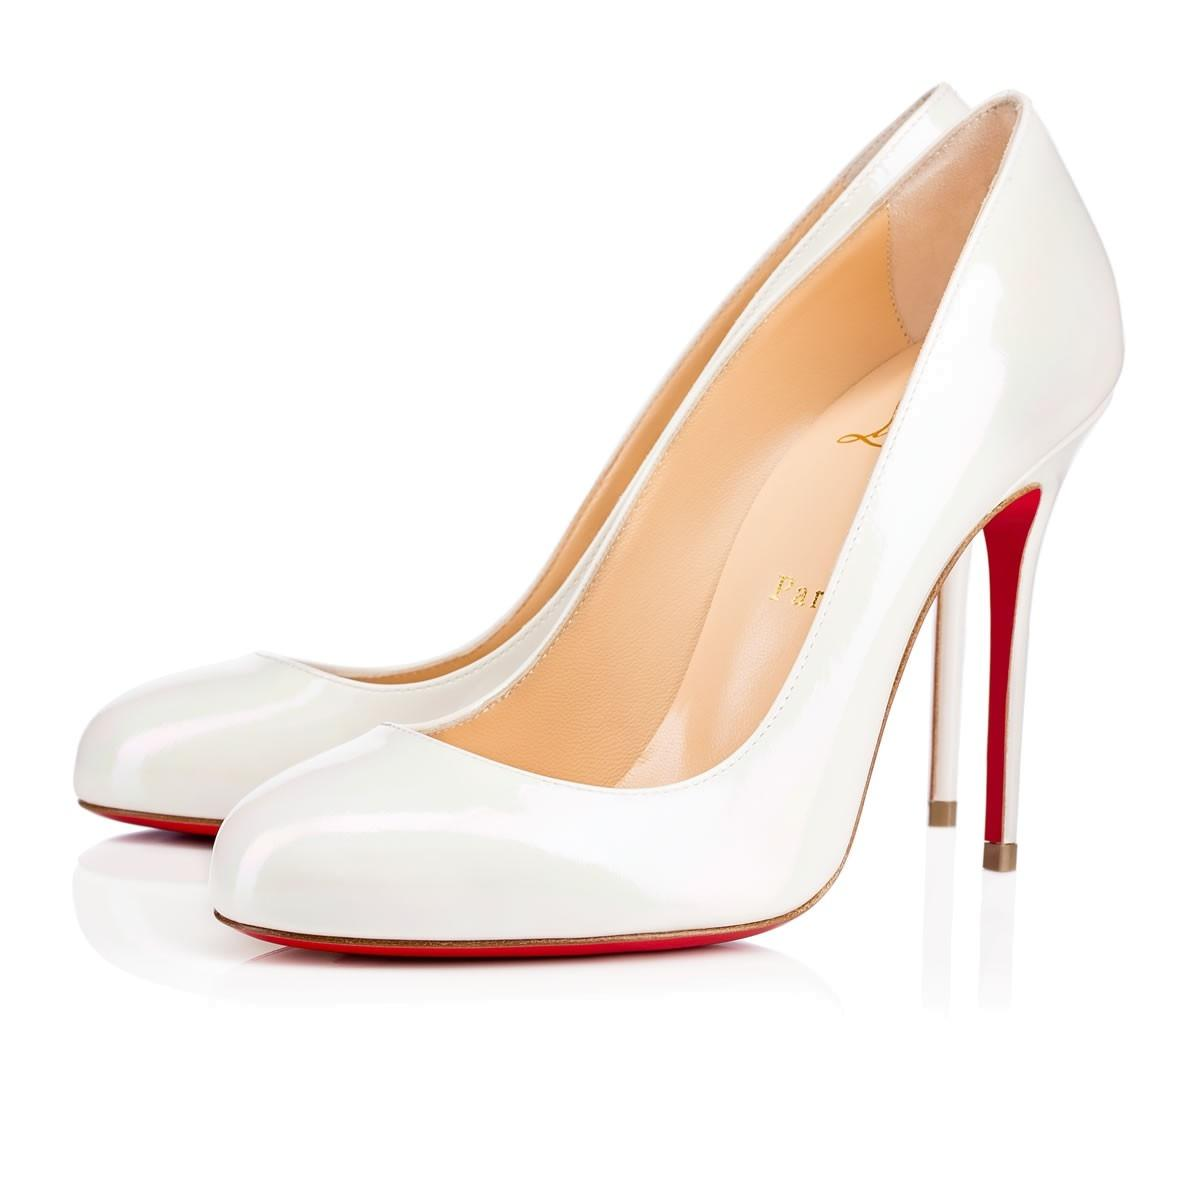 066932d42456 ... discount code for christian louboutin white pumps 169f8 fbd92